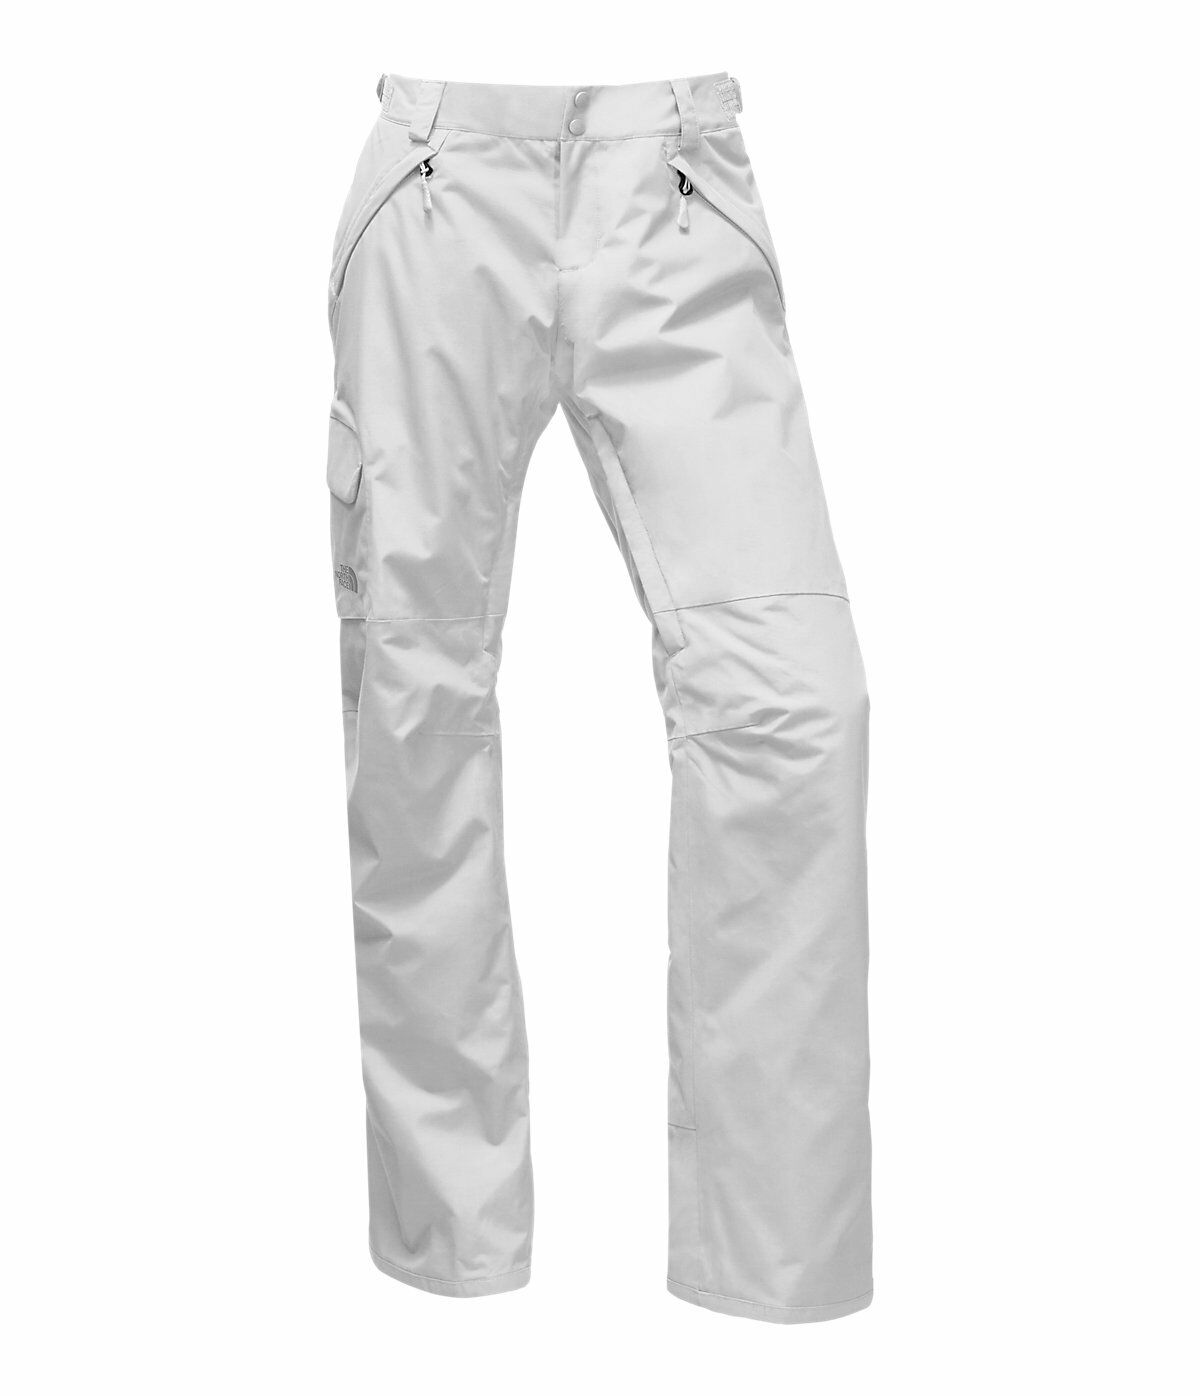 North Face Women's Medium Regular Hyvent Freedom Insulated pants in TNF White